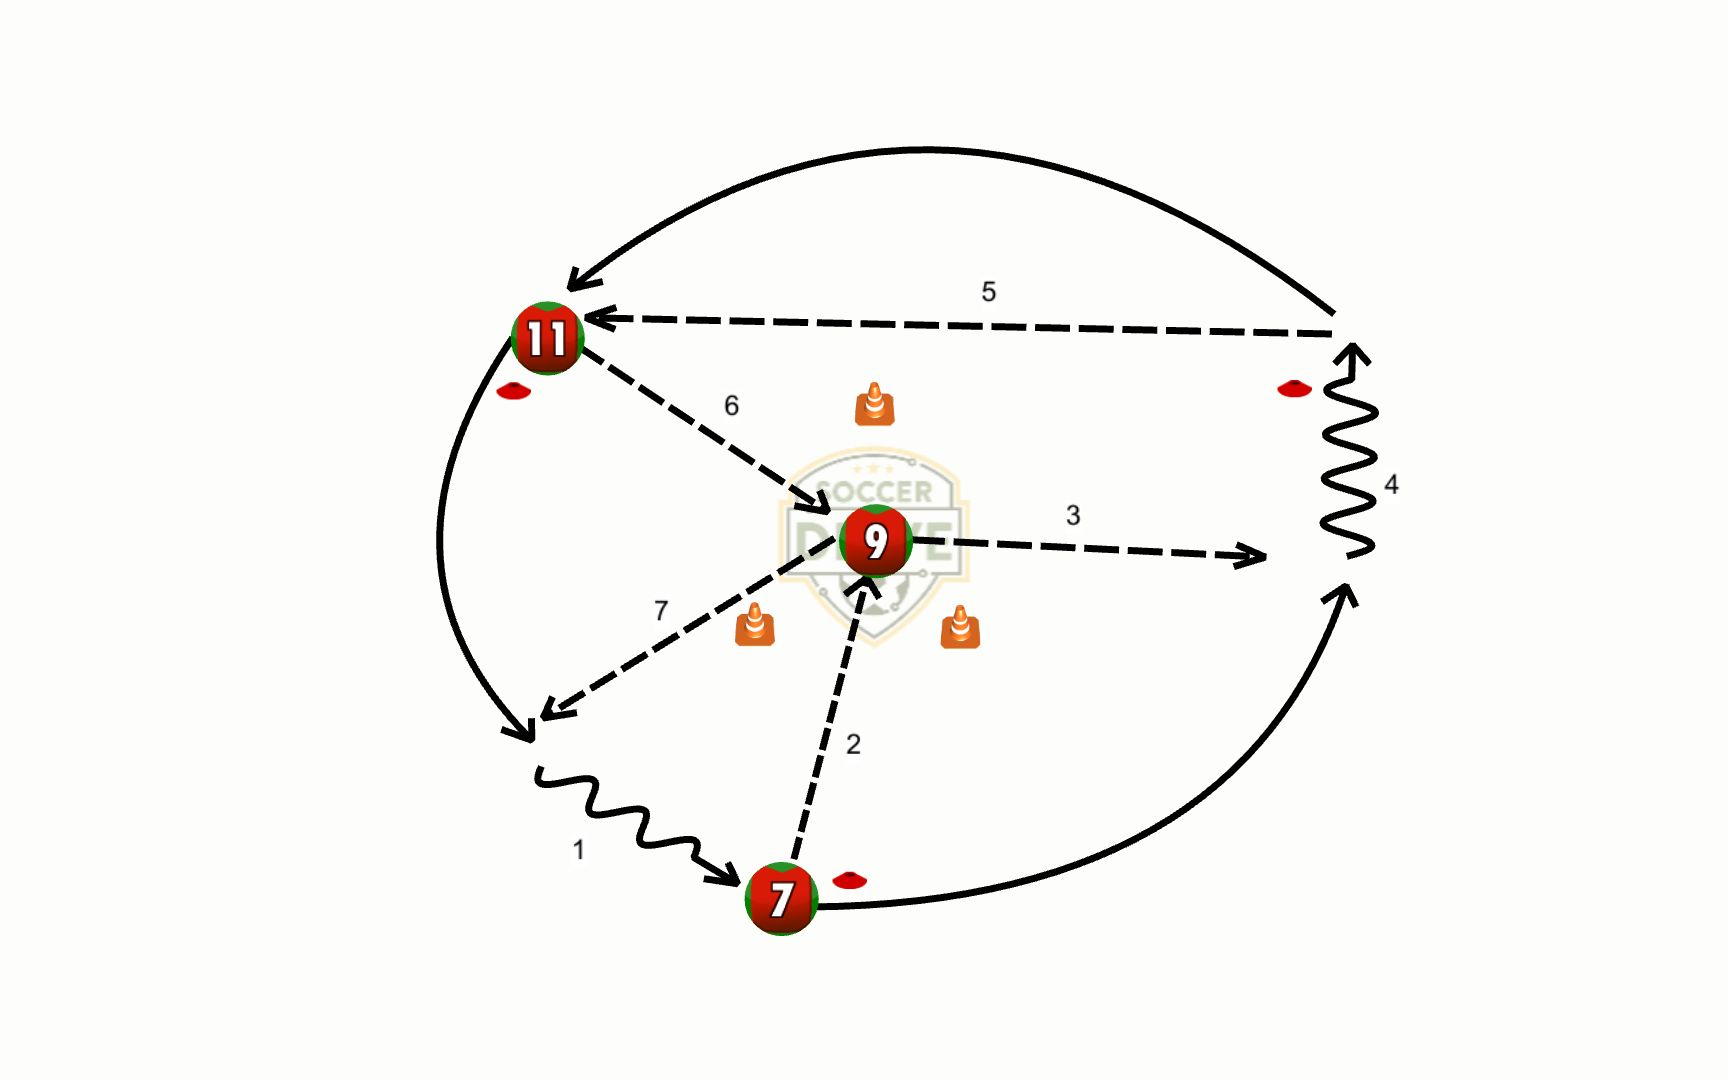 Triangle Combination Wall Passes